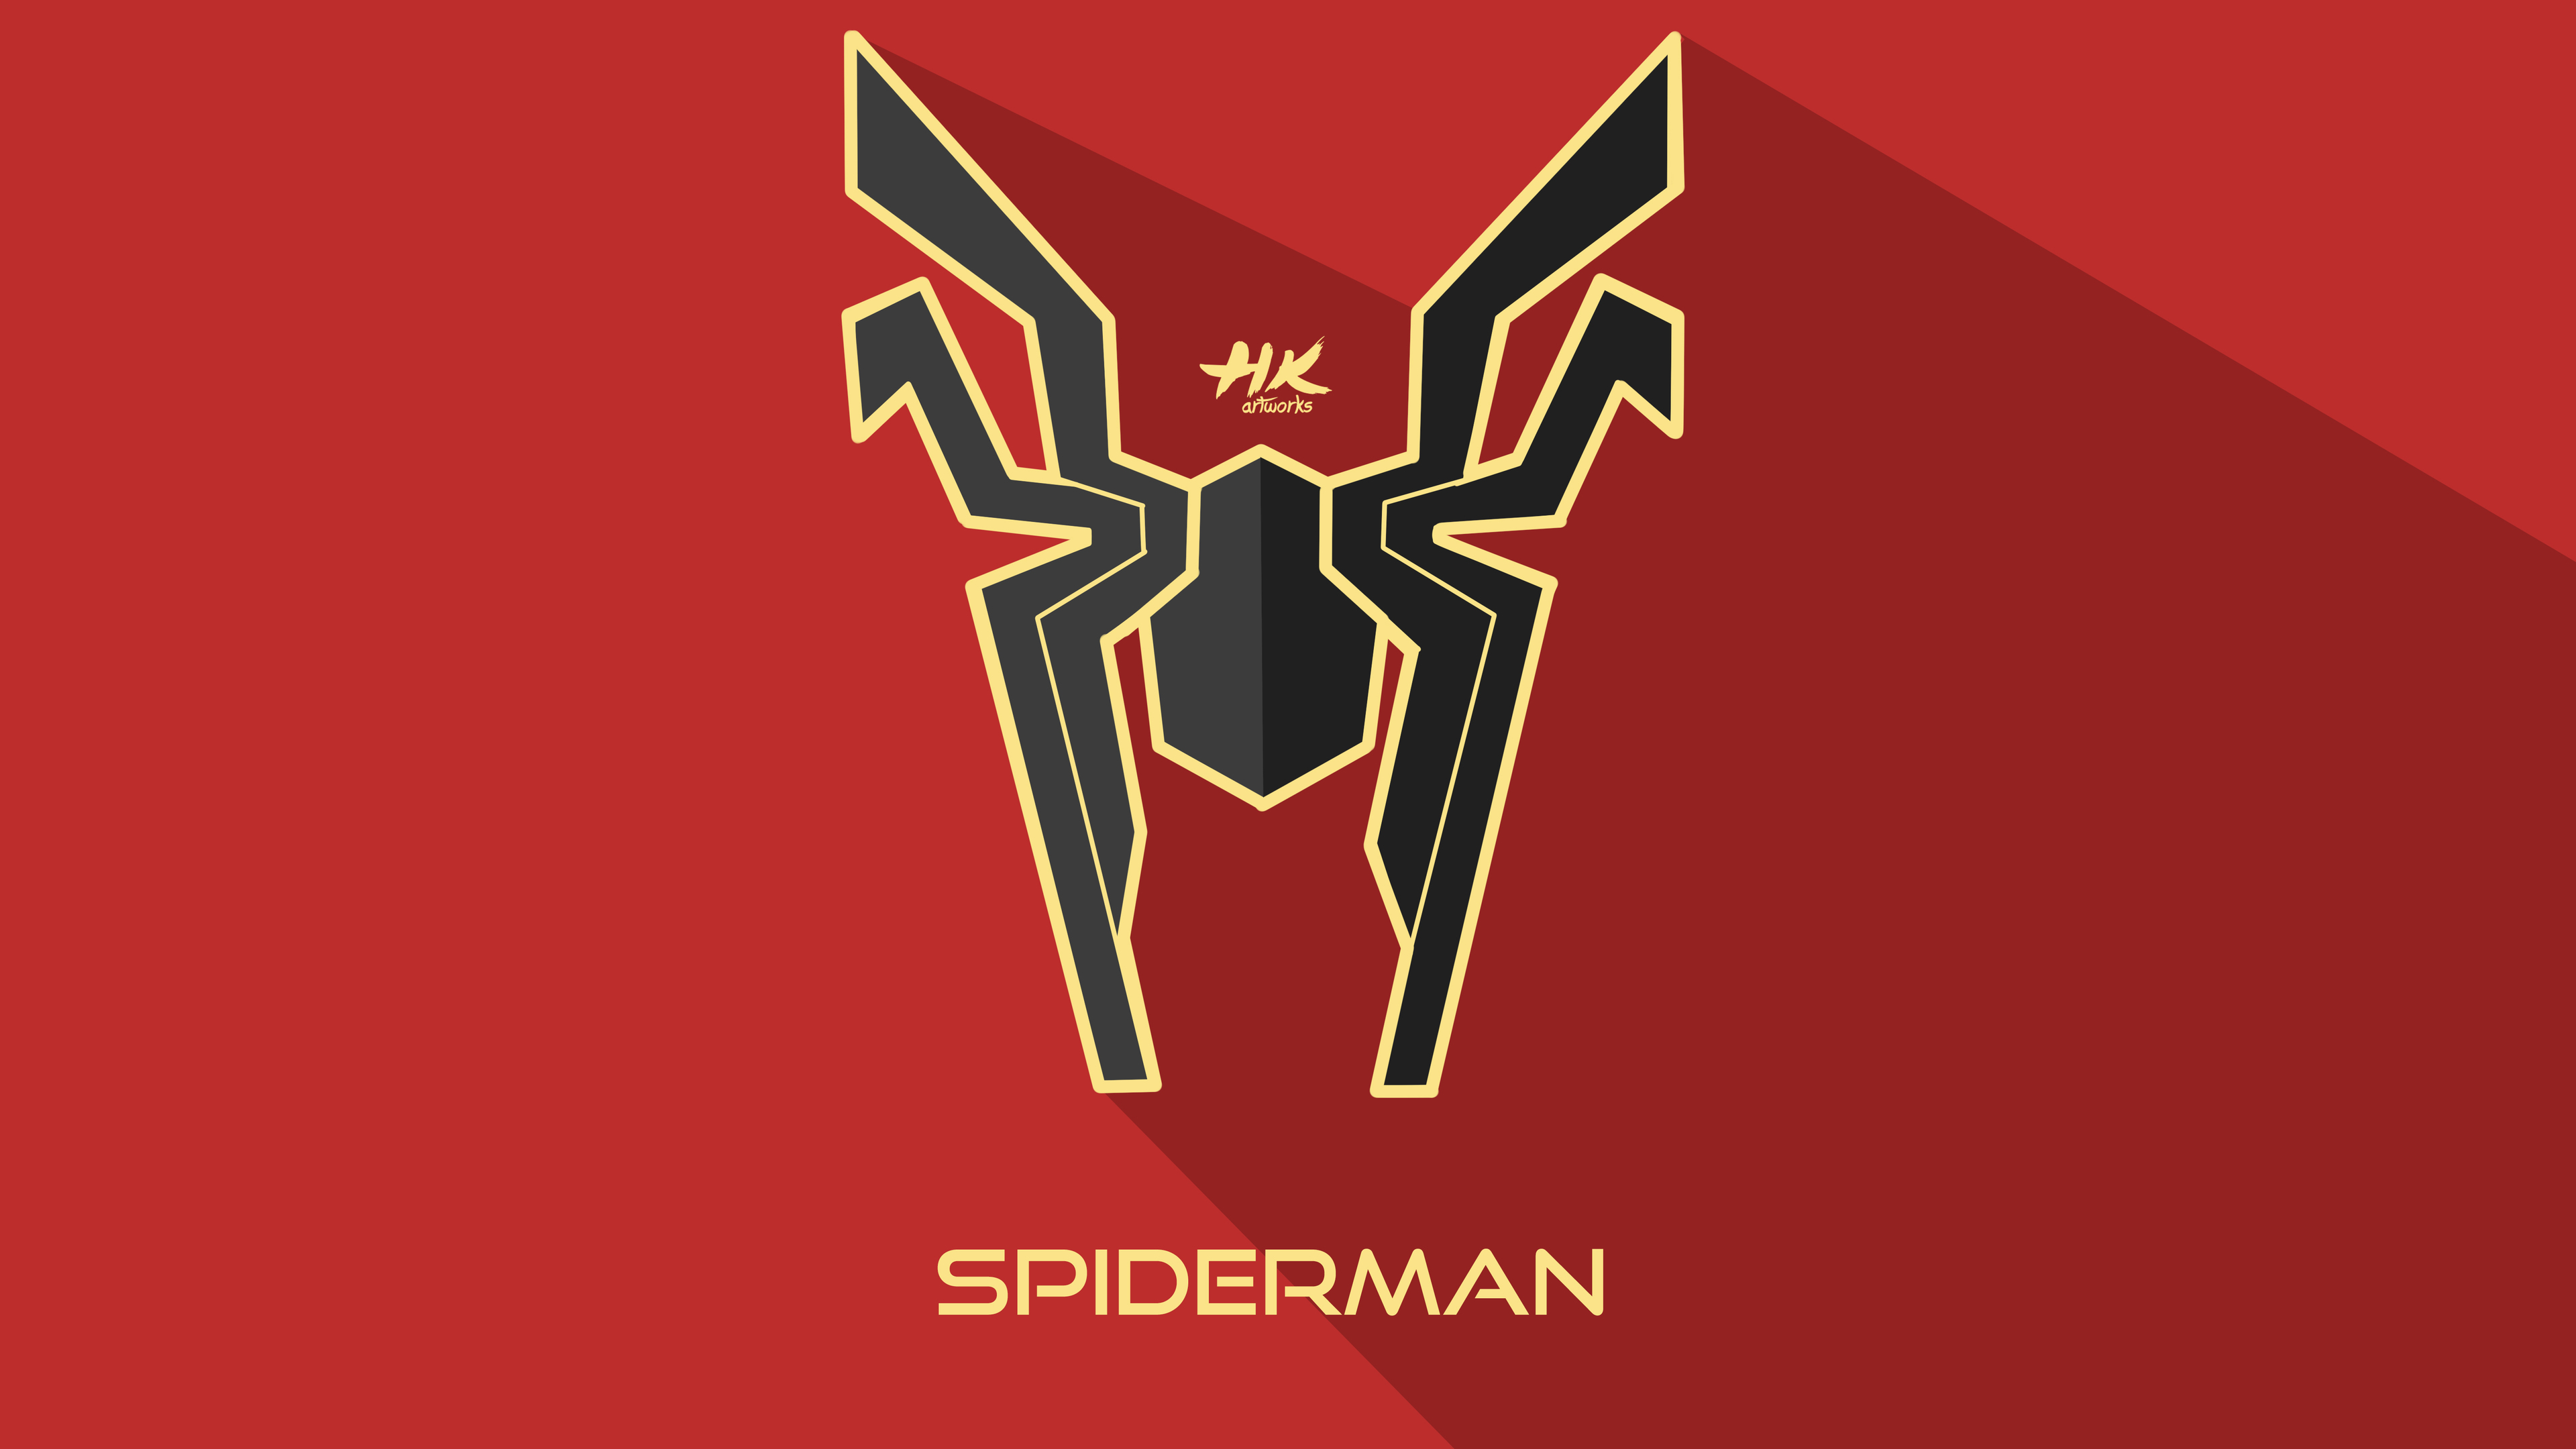 Marvel Hd Wallpapers For Mobile Iron Spider Infinity War Logo Superheroes Wallpapers